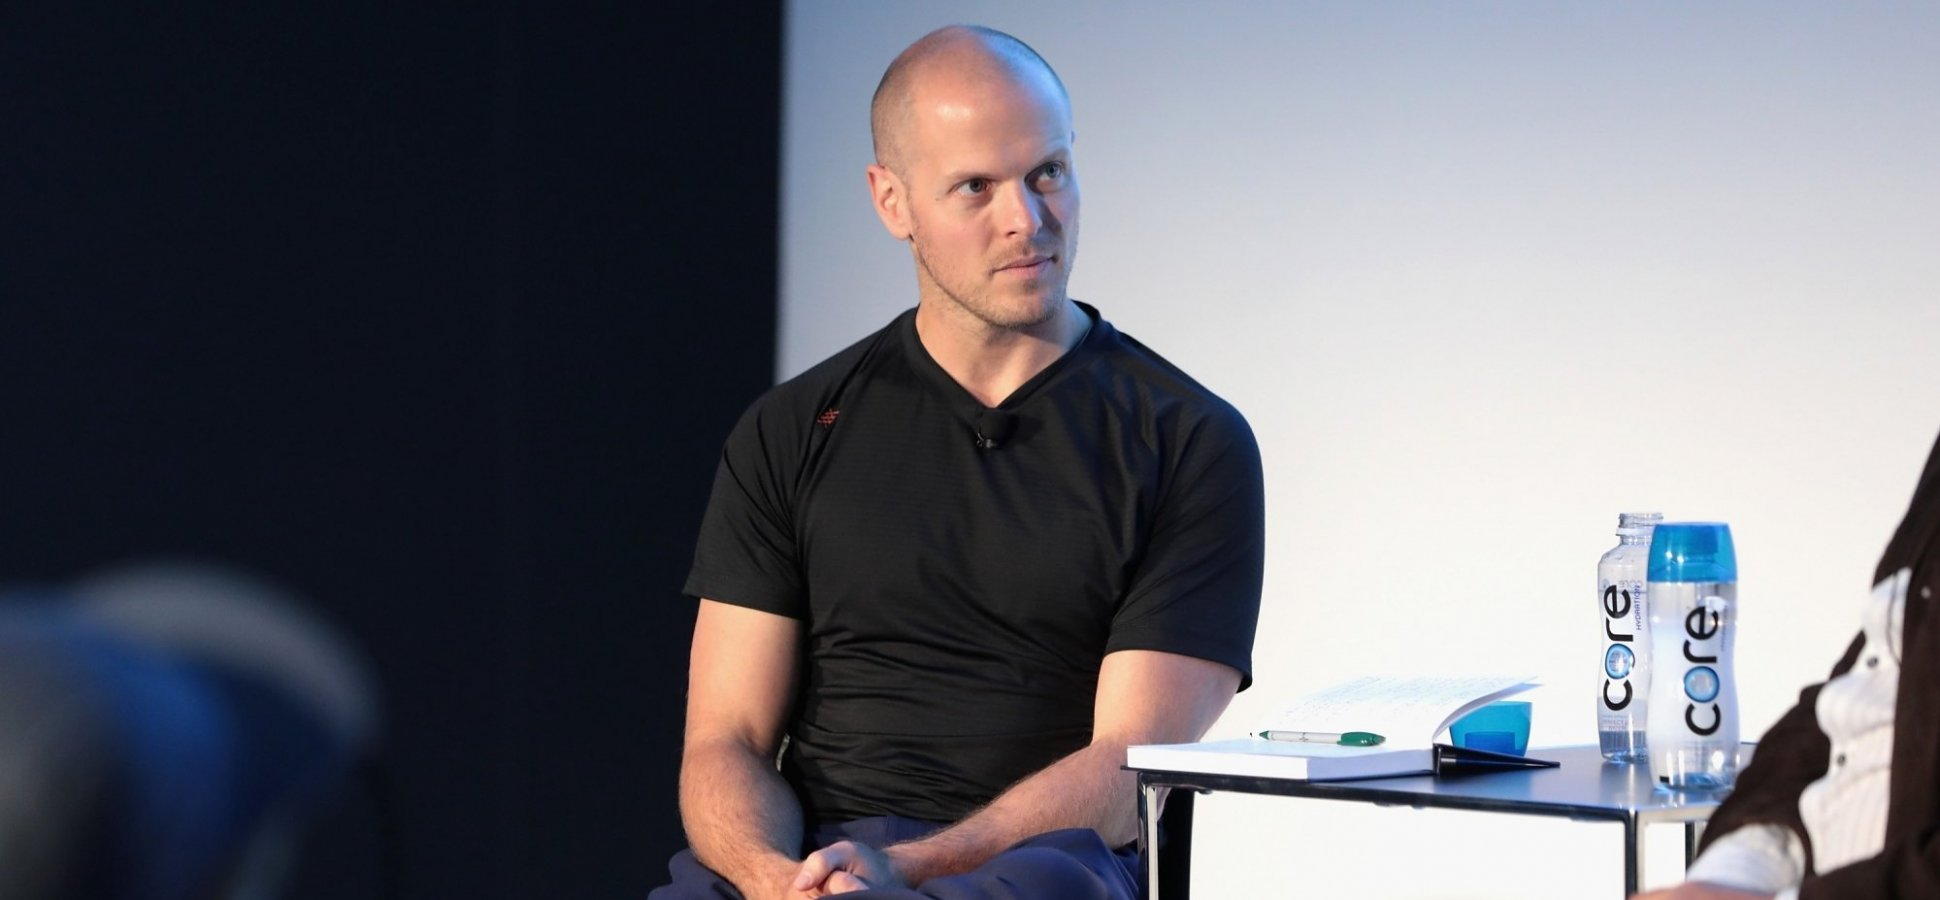 Want to Be More Productive? Try This 1 Proven Tip From Tim Ferriss